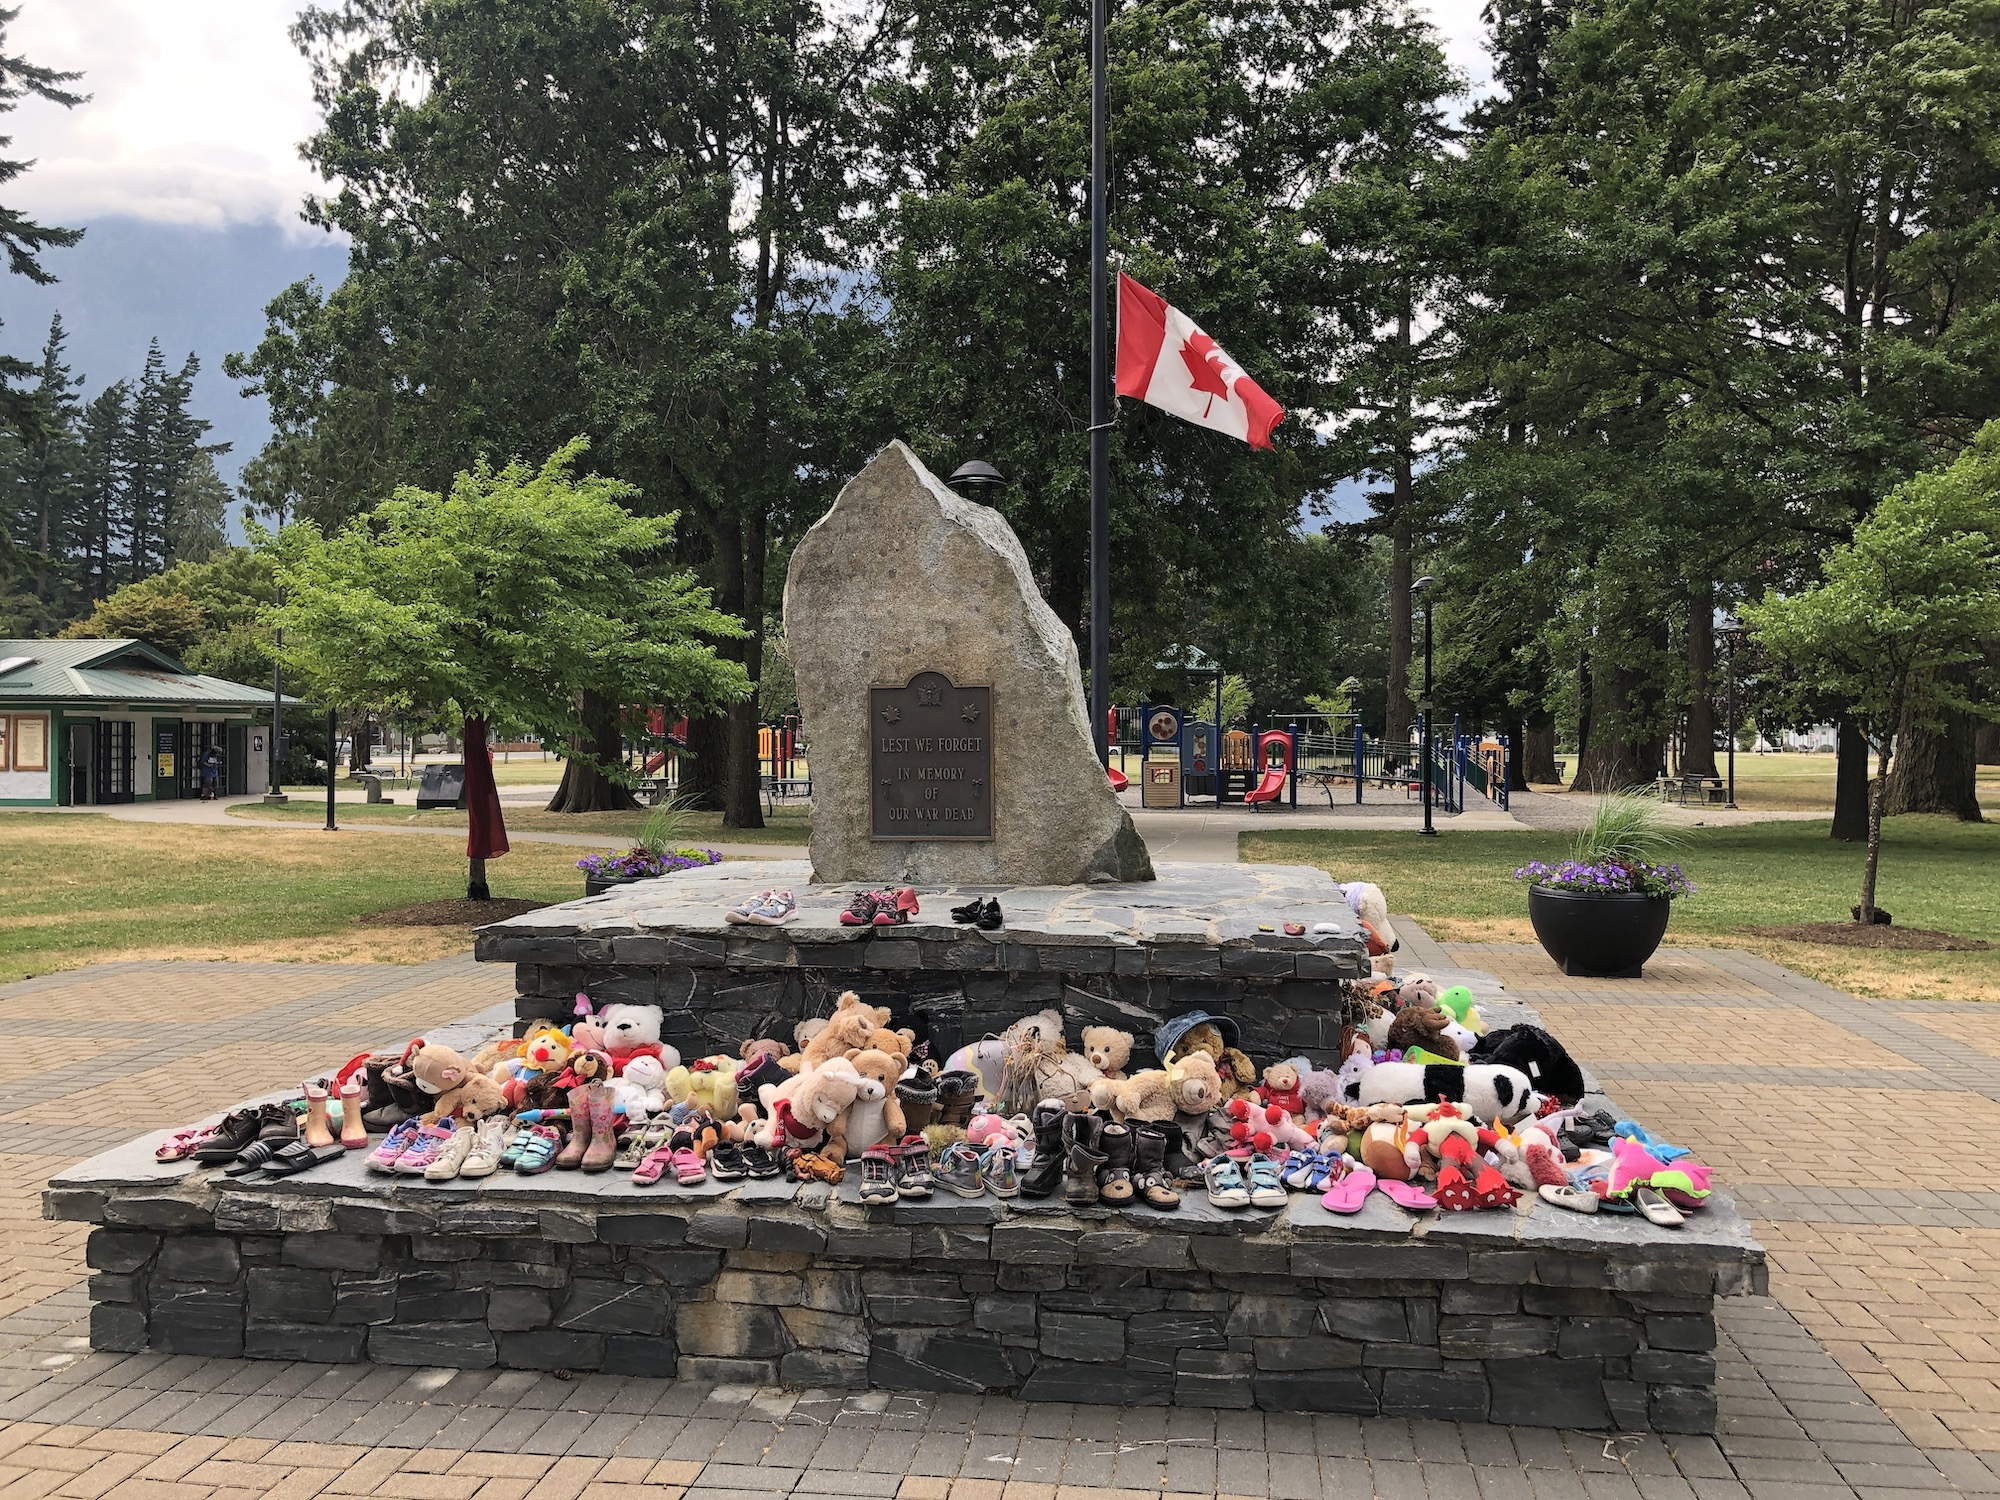 The cenotaph at Hope, BC. Flag is half-masted and shoes cover the cenotaph in memoriam of residential school victims.